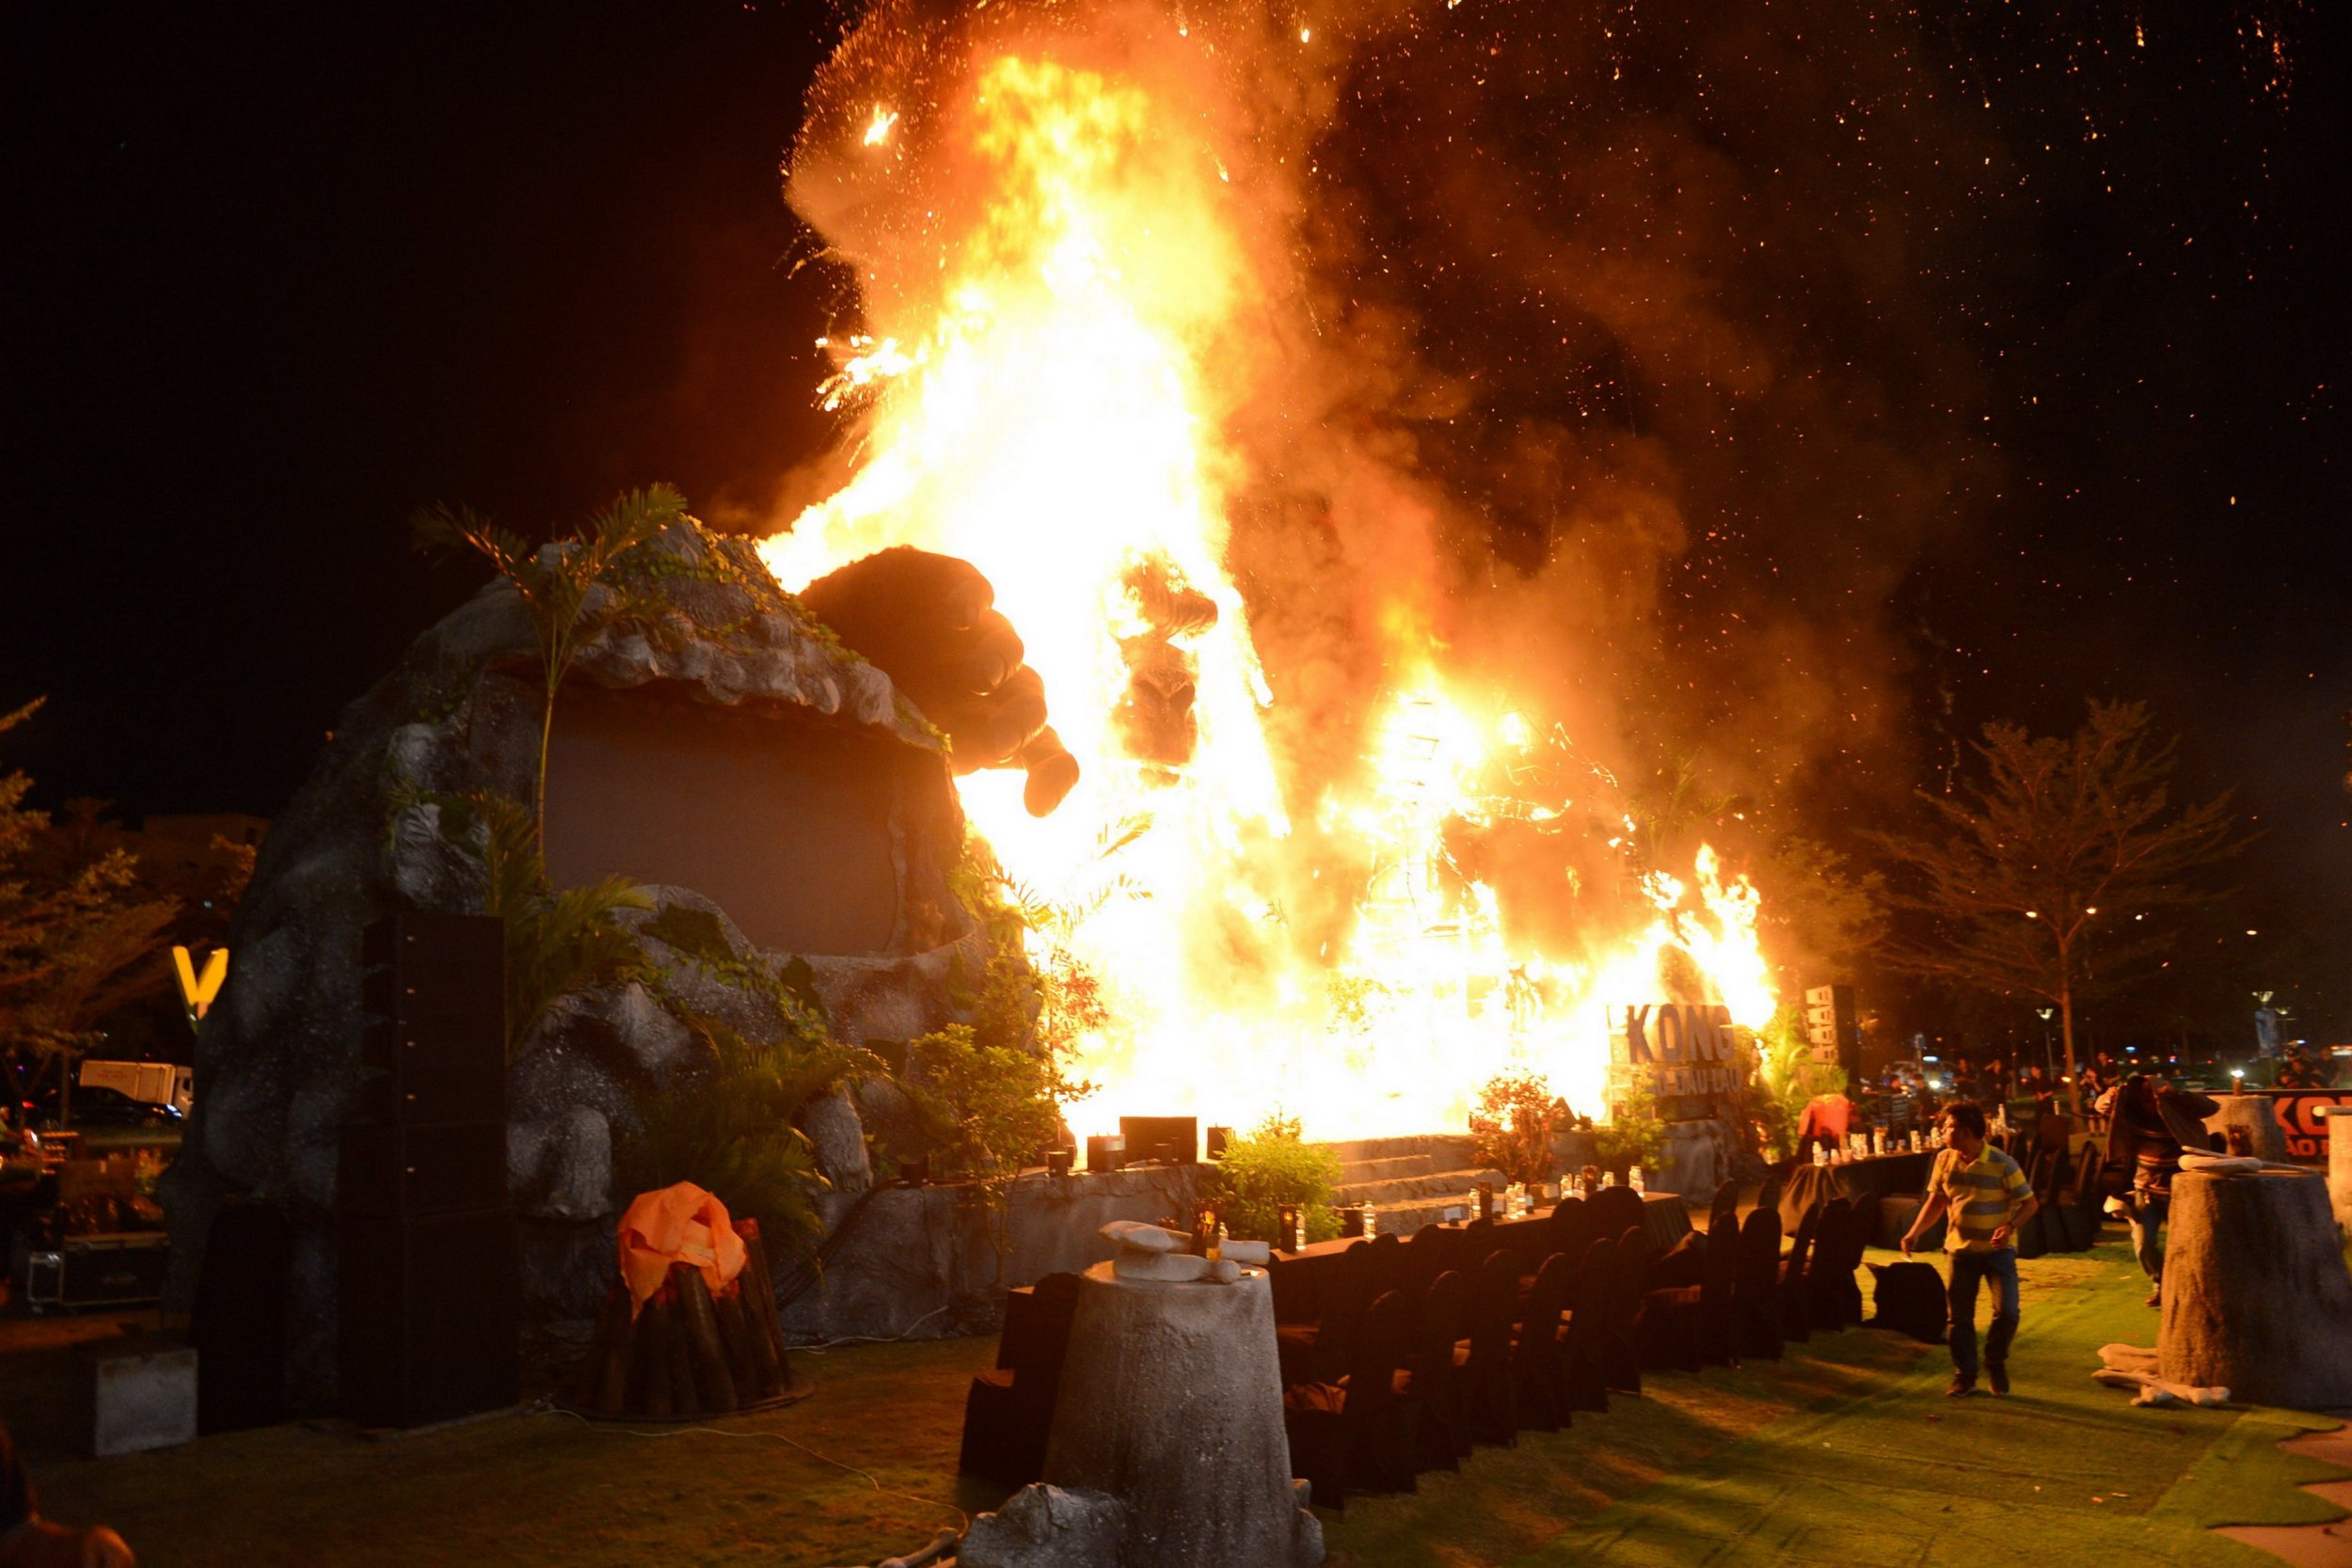 """This picture taken on March 9, 2017 shows a giant model of King Kong going up in flames during the premiere of the """"Kong: Skull Island"""" in Ho Chi Minh City. Film buffs with the hottest ticket in town were left running for safety after a giant model of King Kong went up in flames at the sizzling Vietnam premiere of the rebooted horror classic. / AFP PHOTO / STRSTR/AFP/Getty Images"""